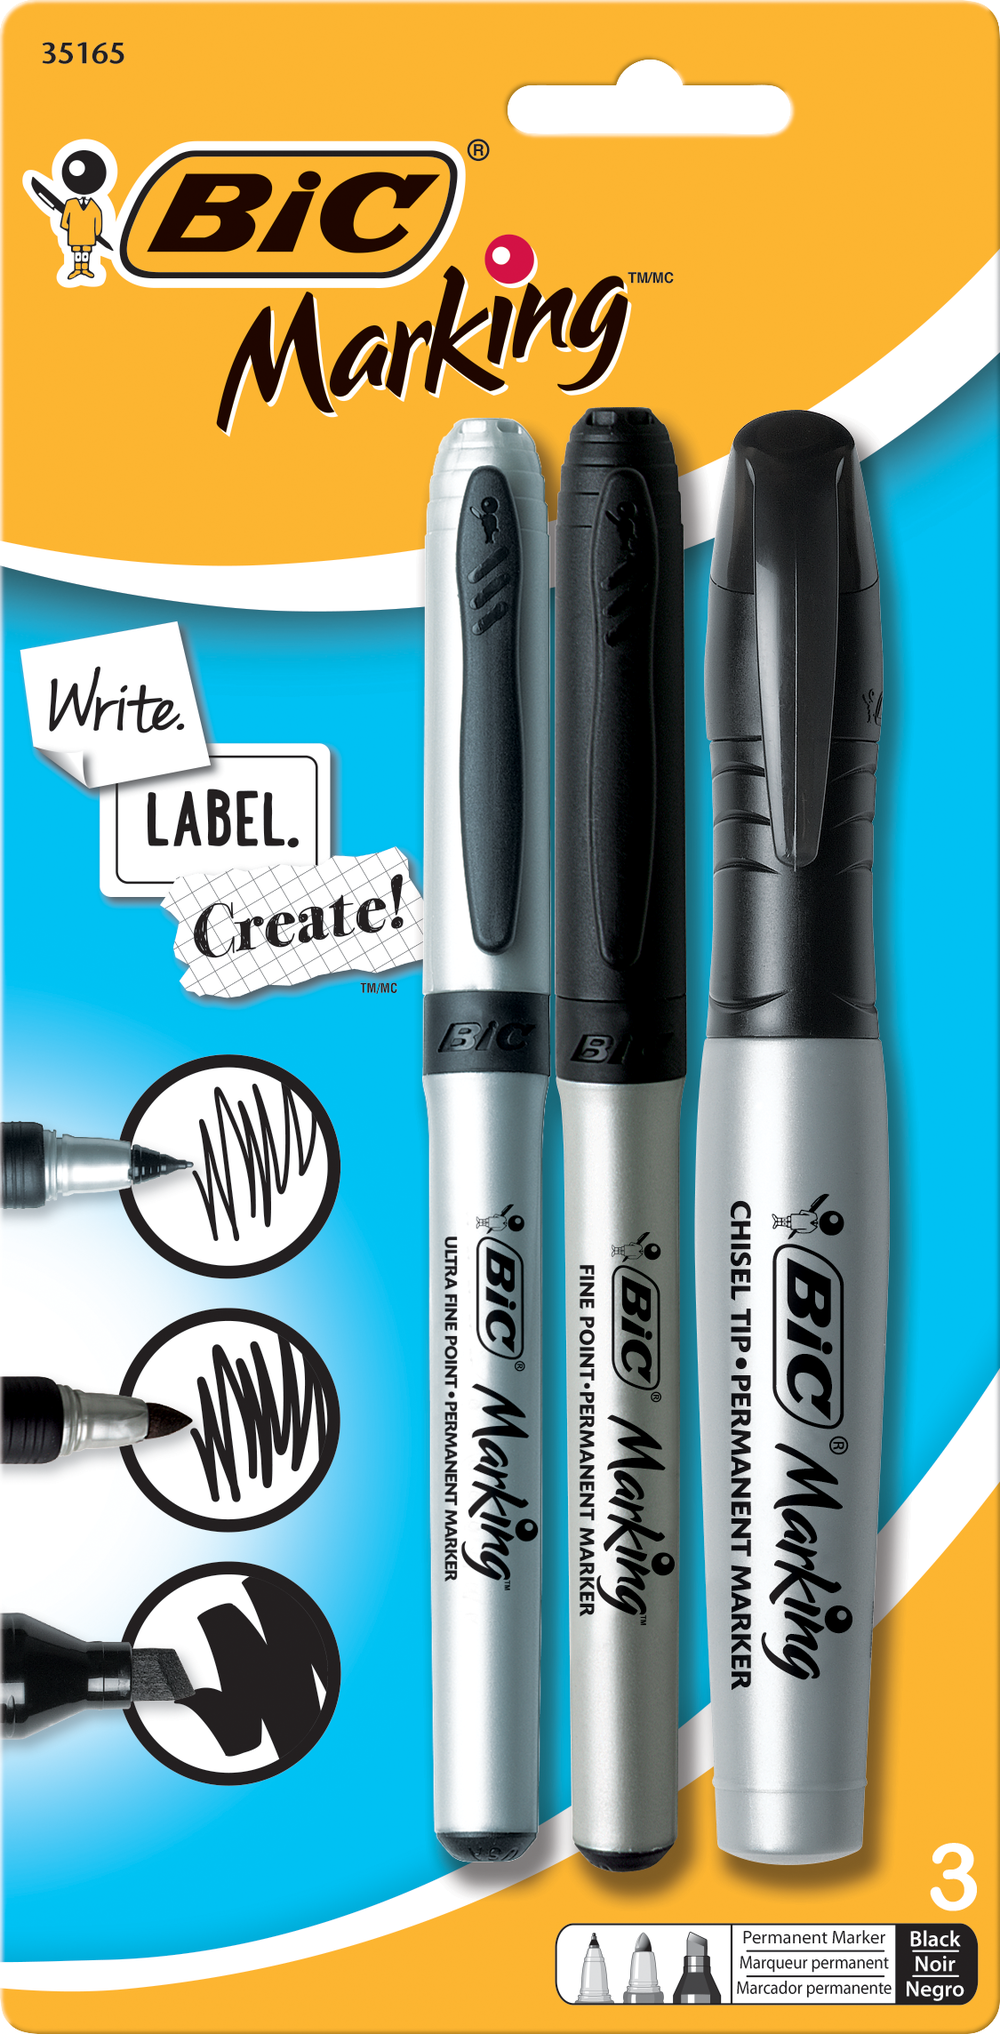 BIC Marking Permanent Marker - Black Asst 3Pk BP